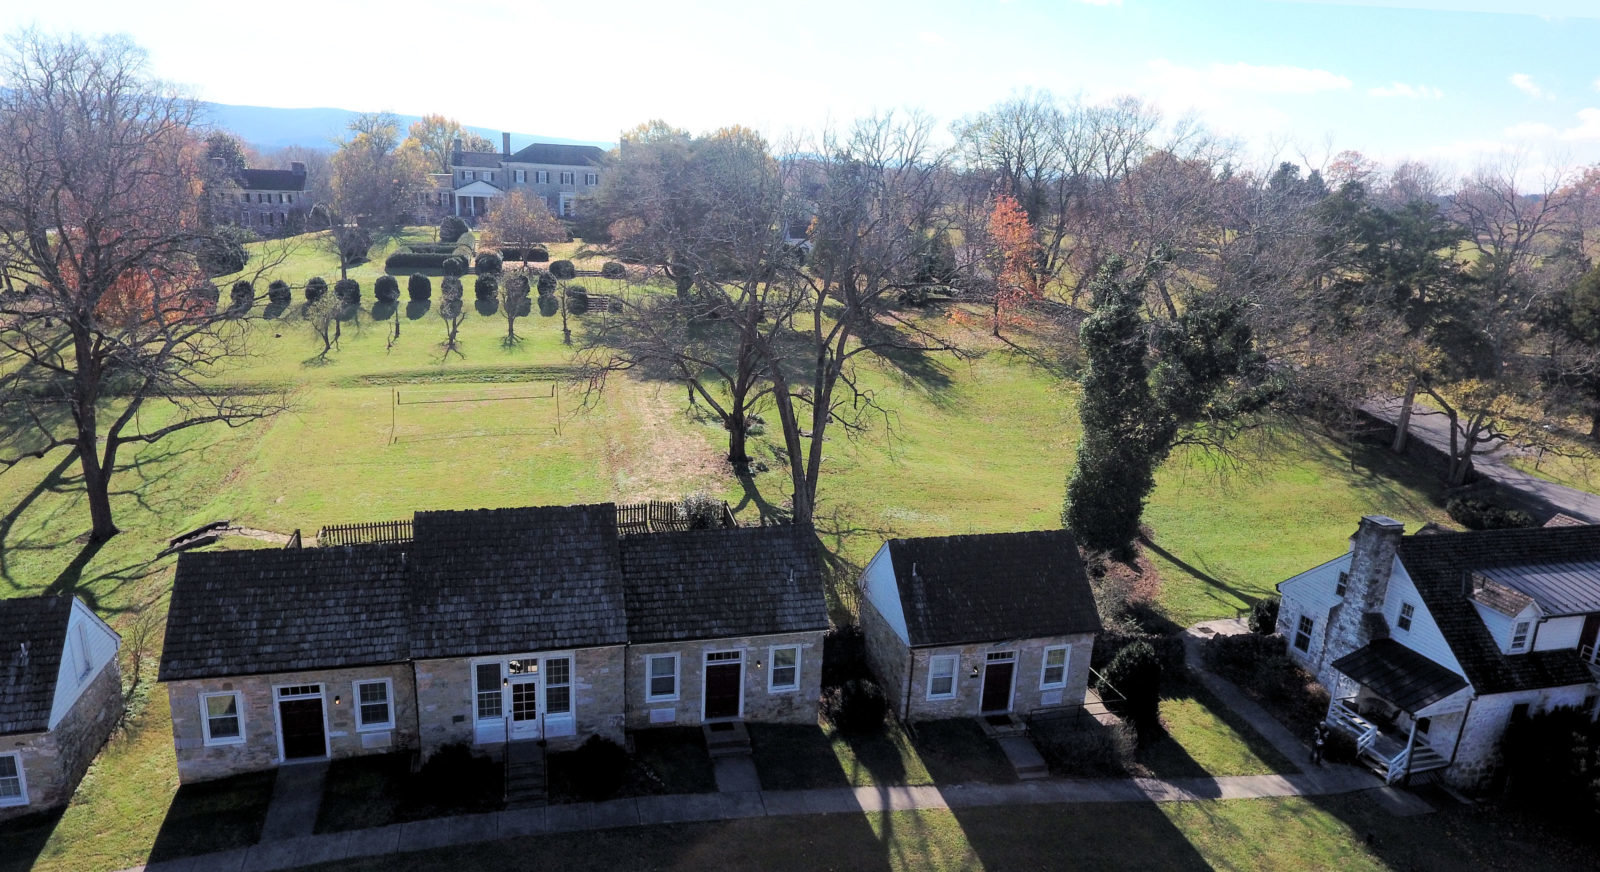 Aerial view of the guest cabins at Carter Hall. The manor home is visible behind them.